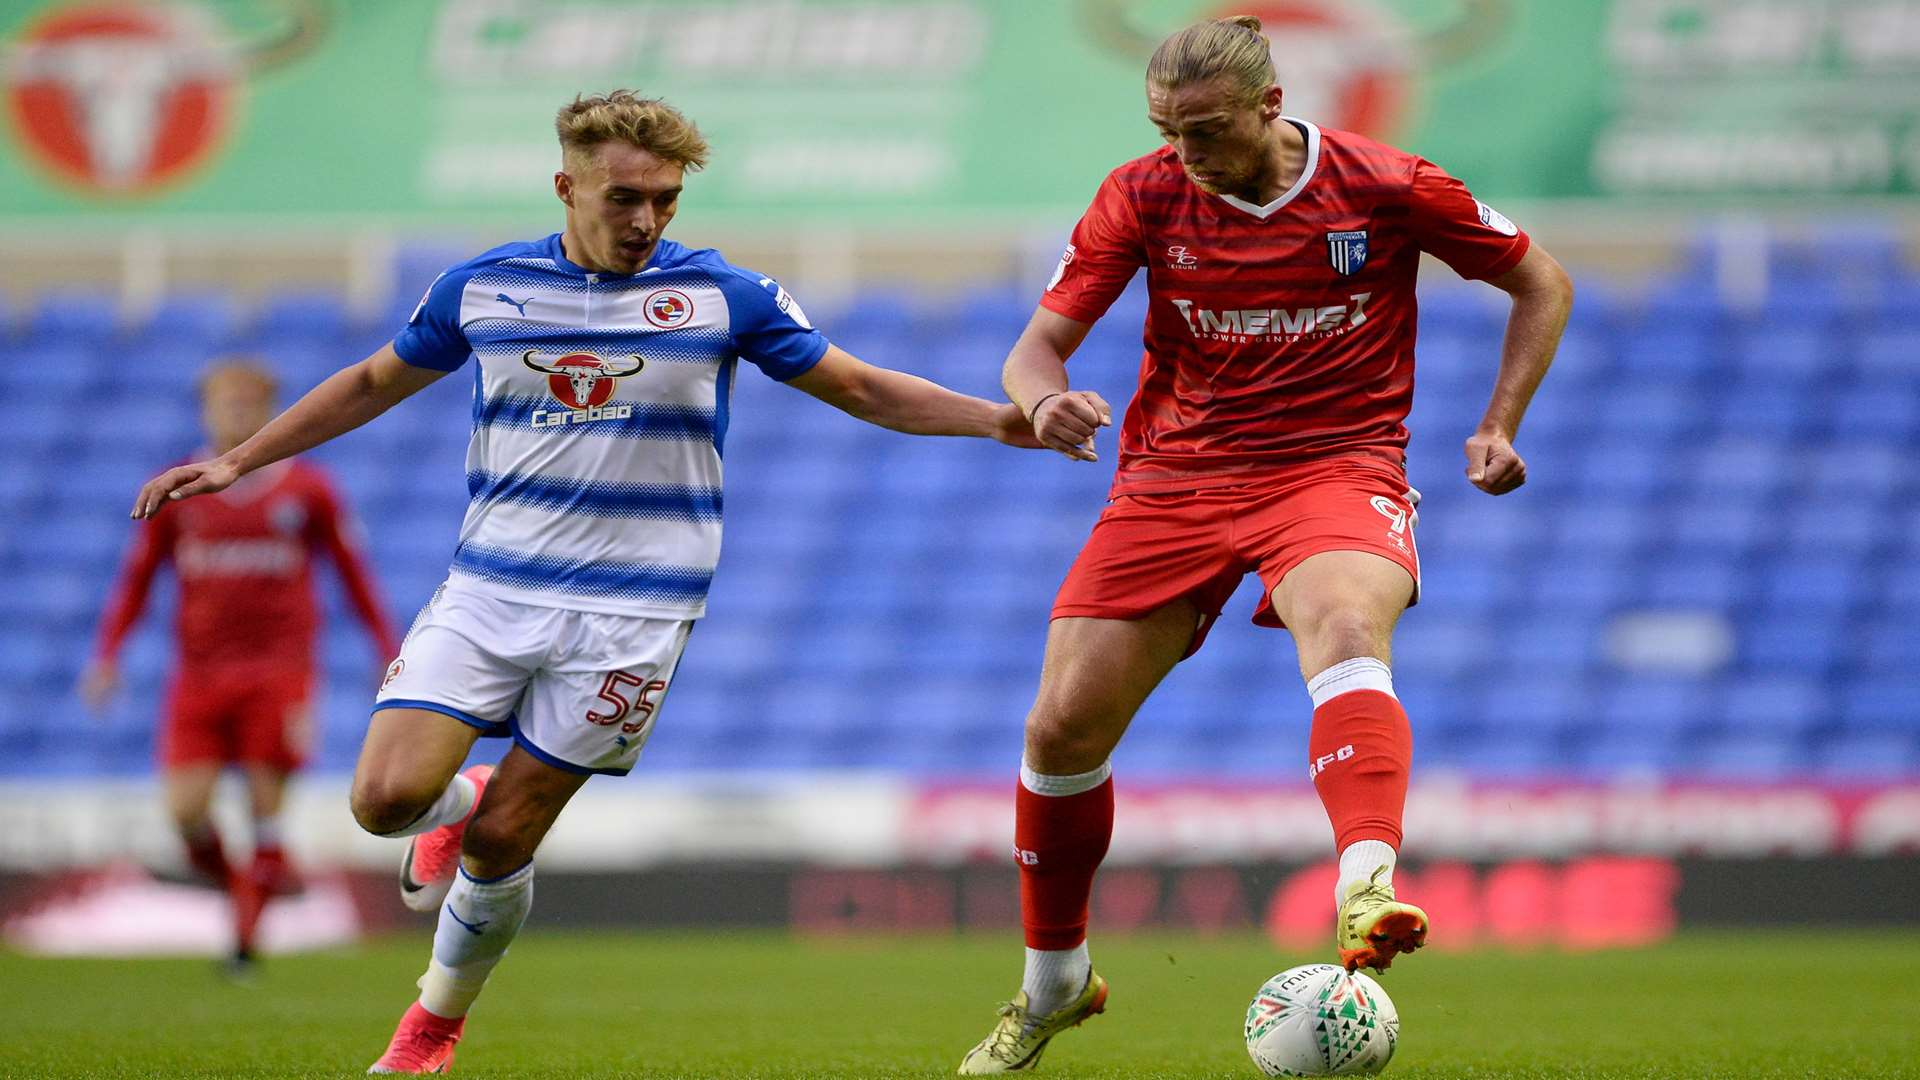 Tom Eaves on the ball as Reading's Sam Smith stays close Picture: Ady Kerry